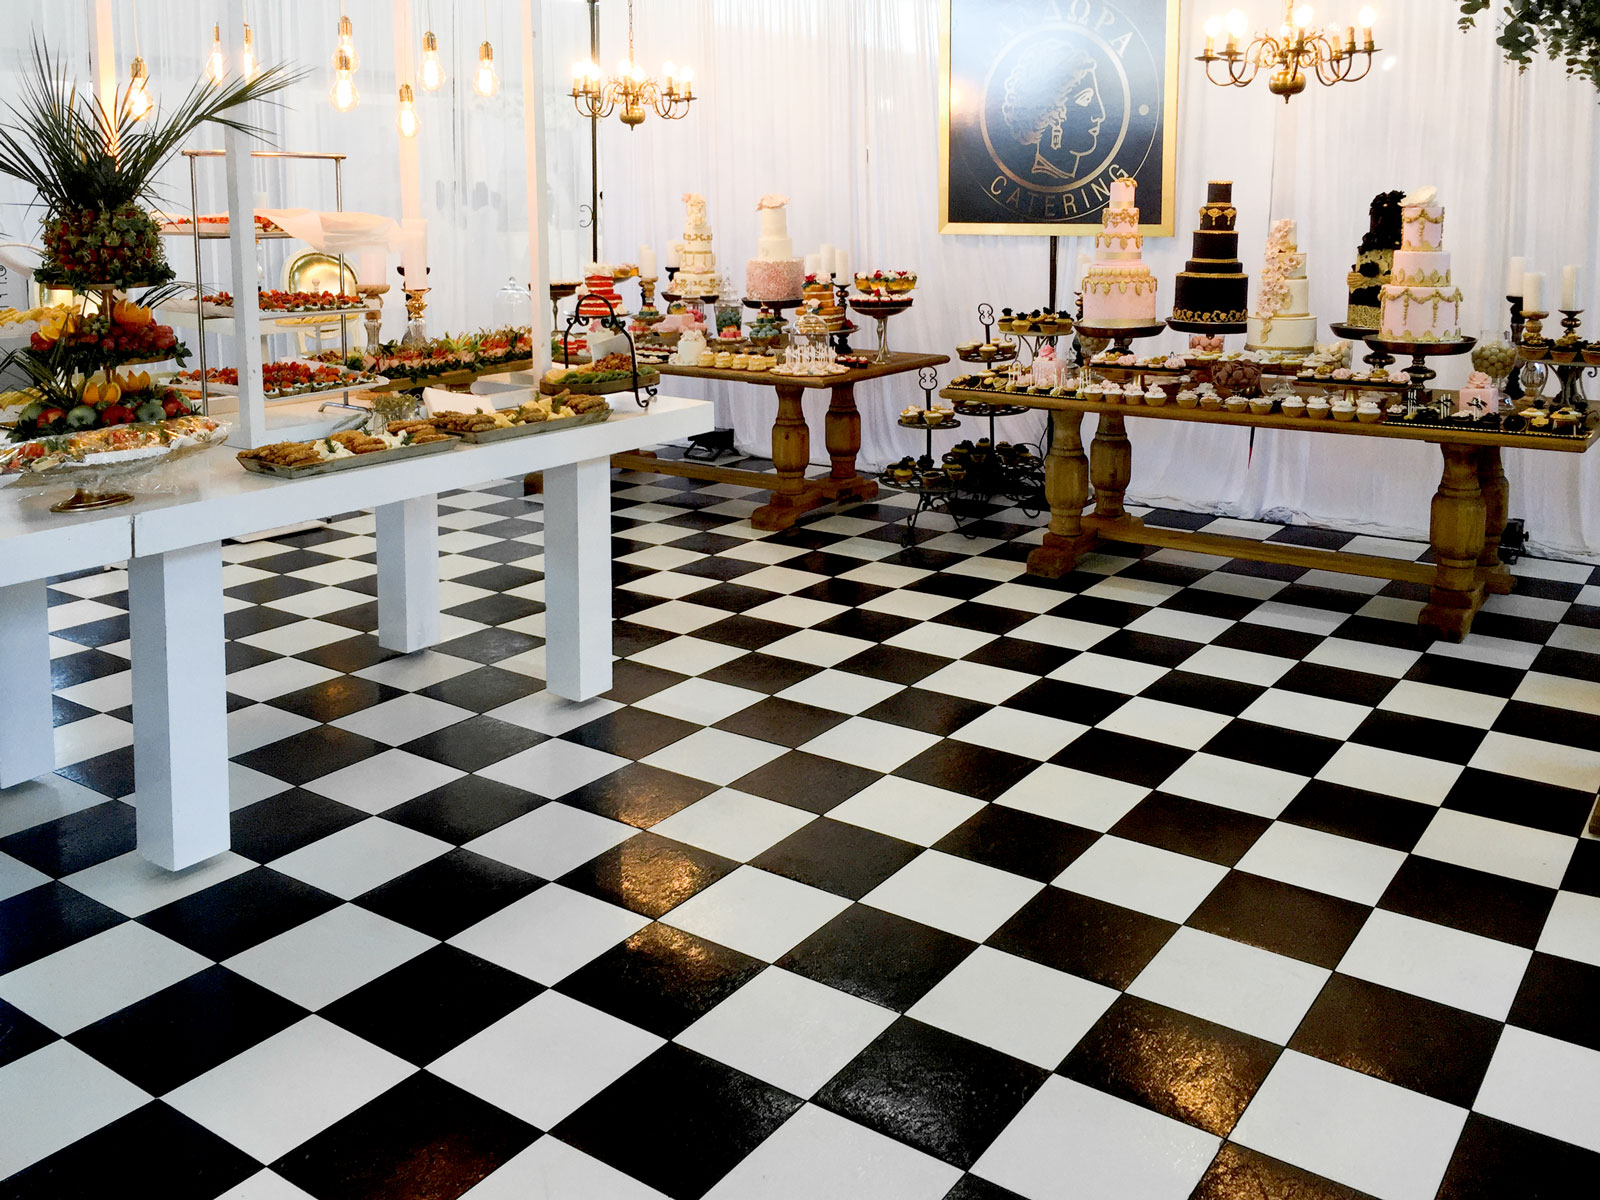 Wedding food tent floored with SnapLock's Slate Black and White dance flooring